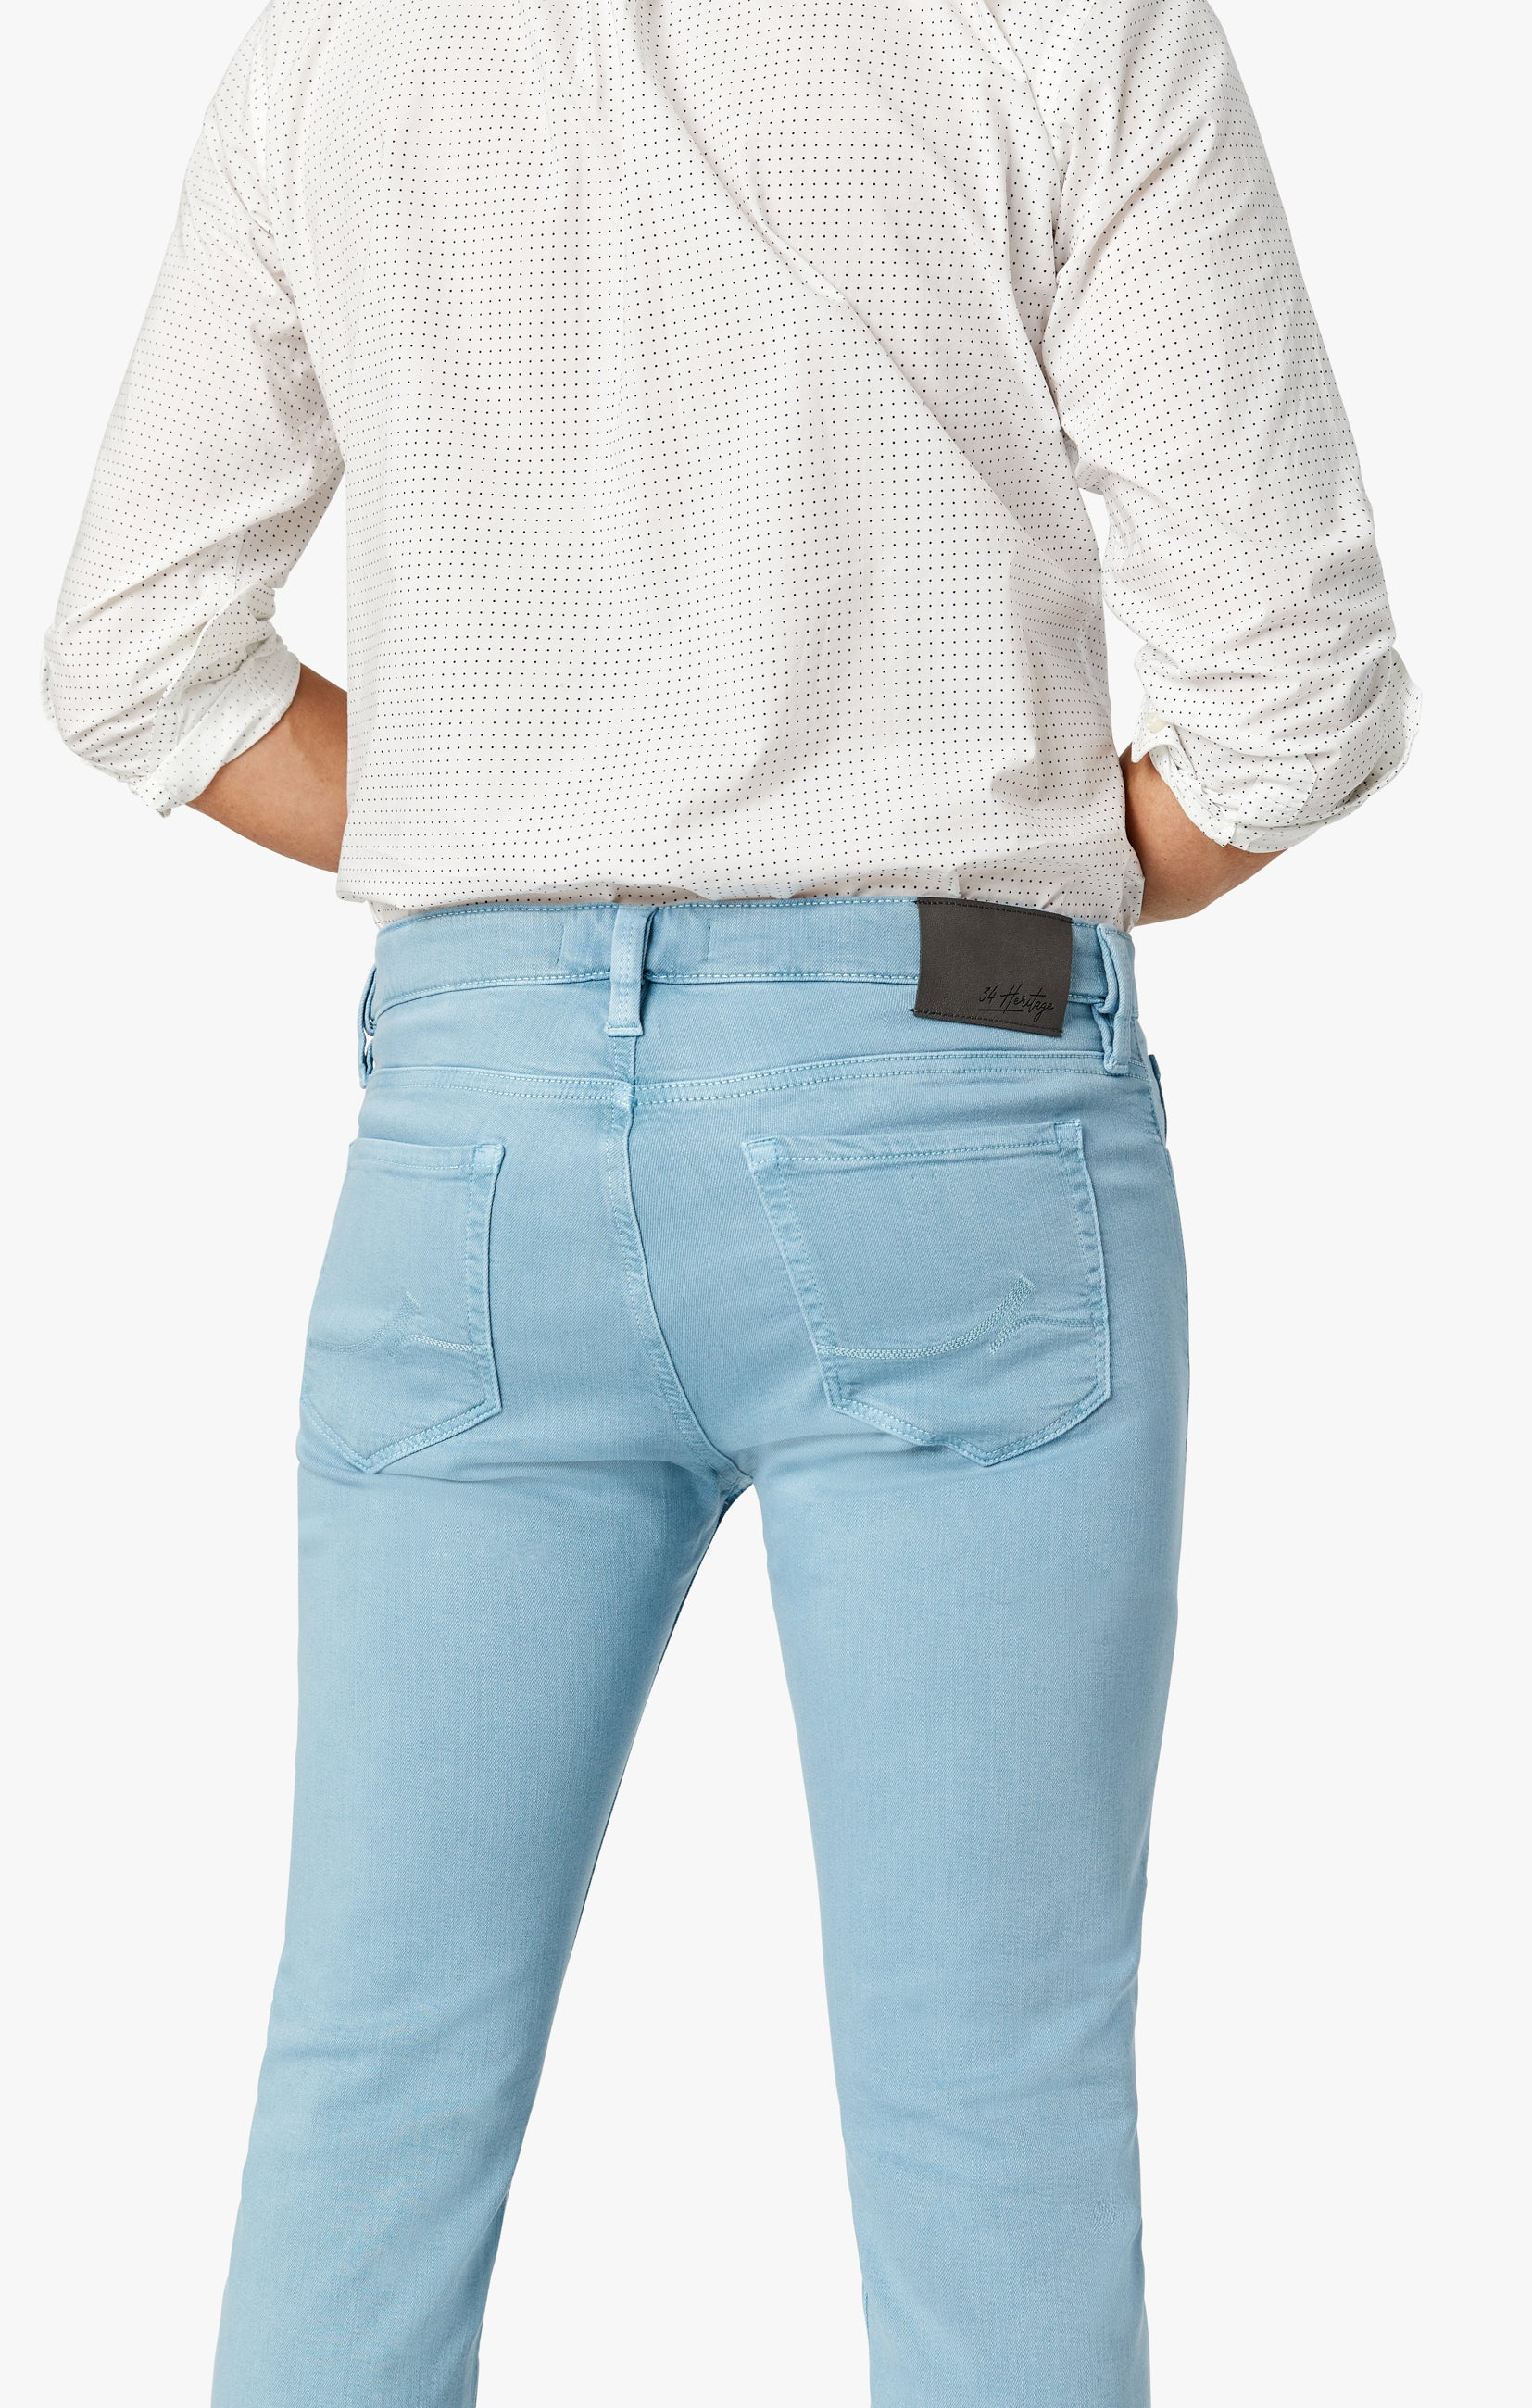 Cool Tapered Leg Pants In Light Blue Comfort Image 4